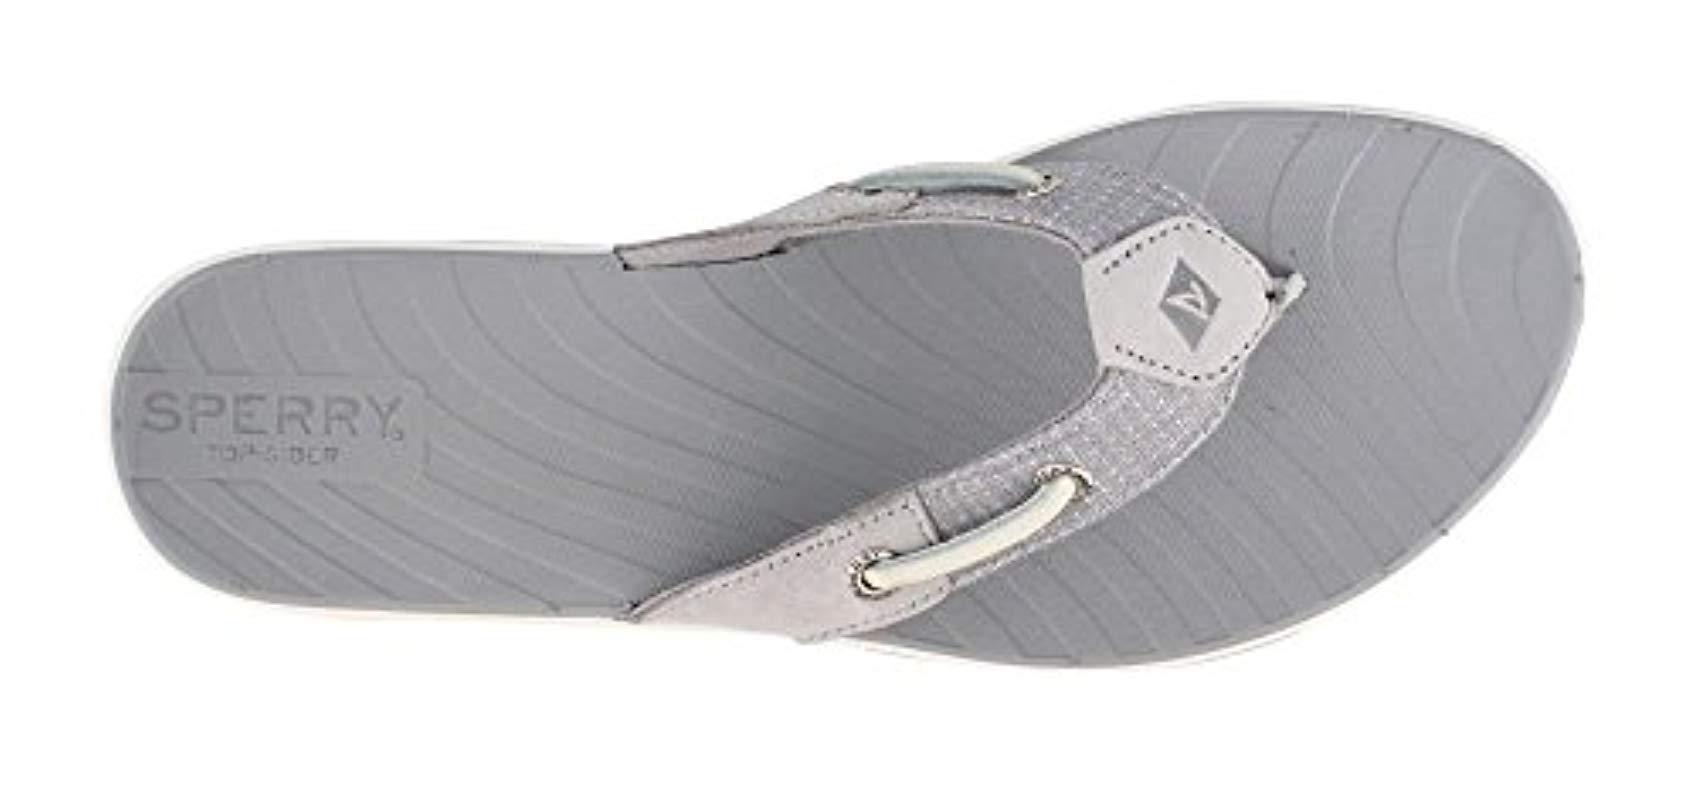 c4bb425e3a4fa Sperry Top-Sider - Gray Seabrook Surf Two-tone Flat Sandal - Lyst. View  fullscreen